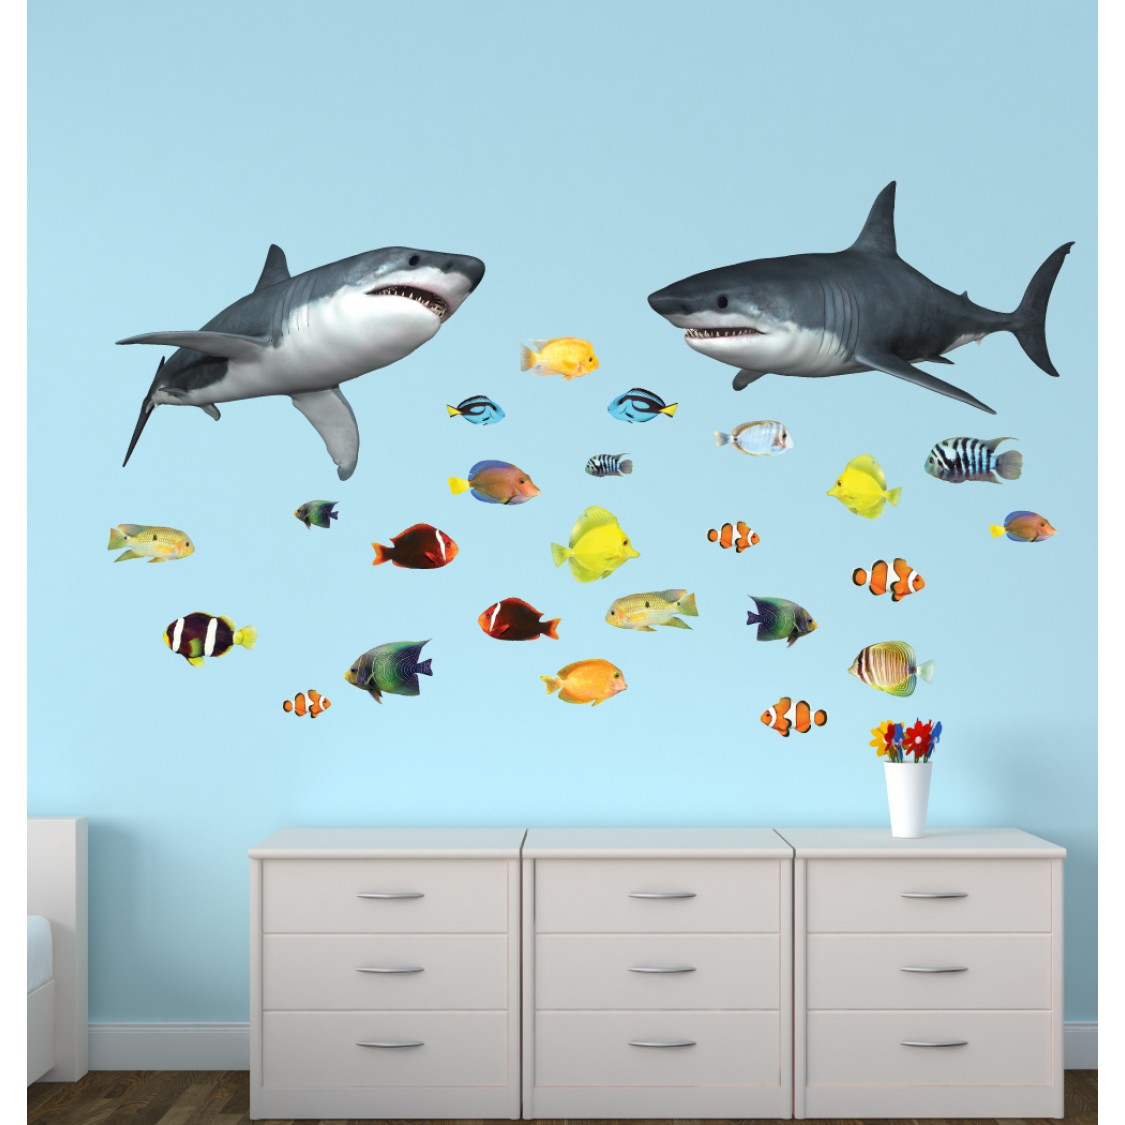 full size underwater murals underwater murals children wall decals wall stickers giant with shark wall decor for nursery or baby room